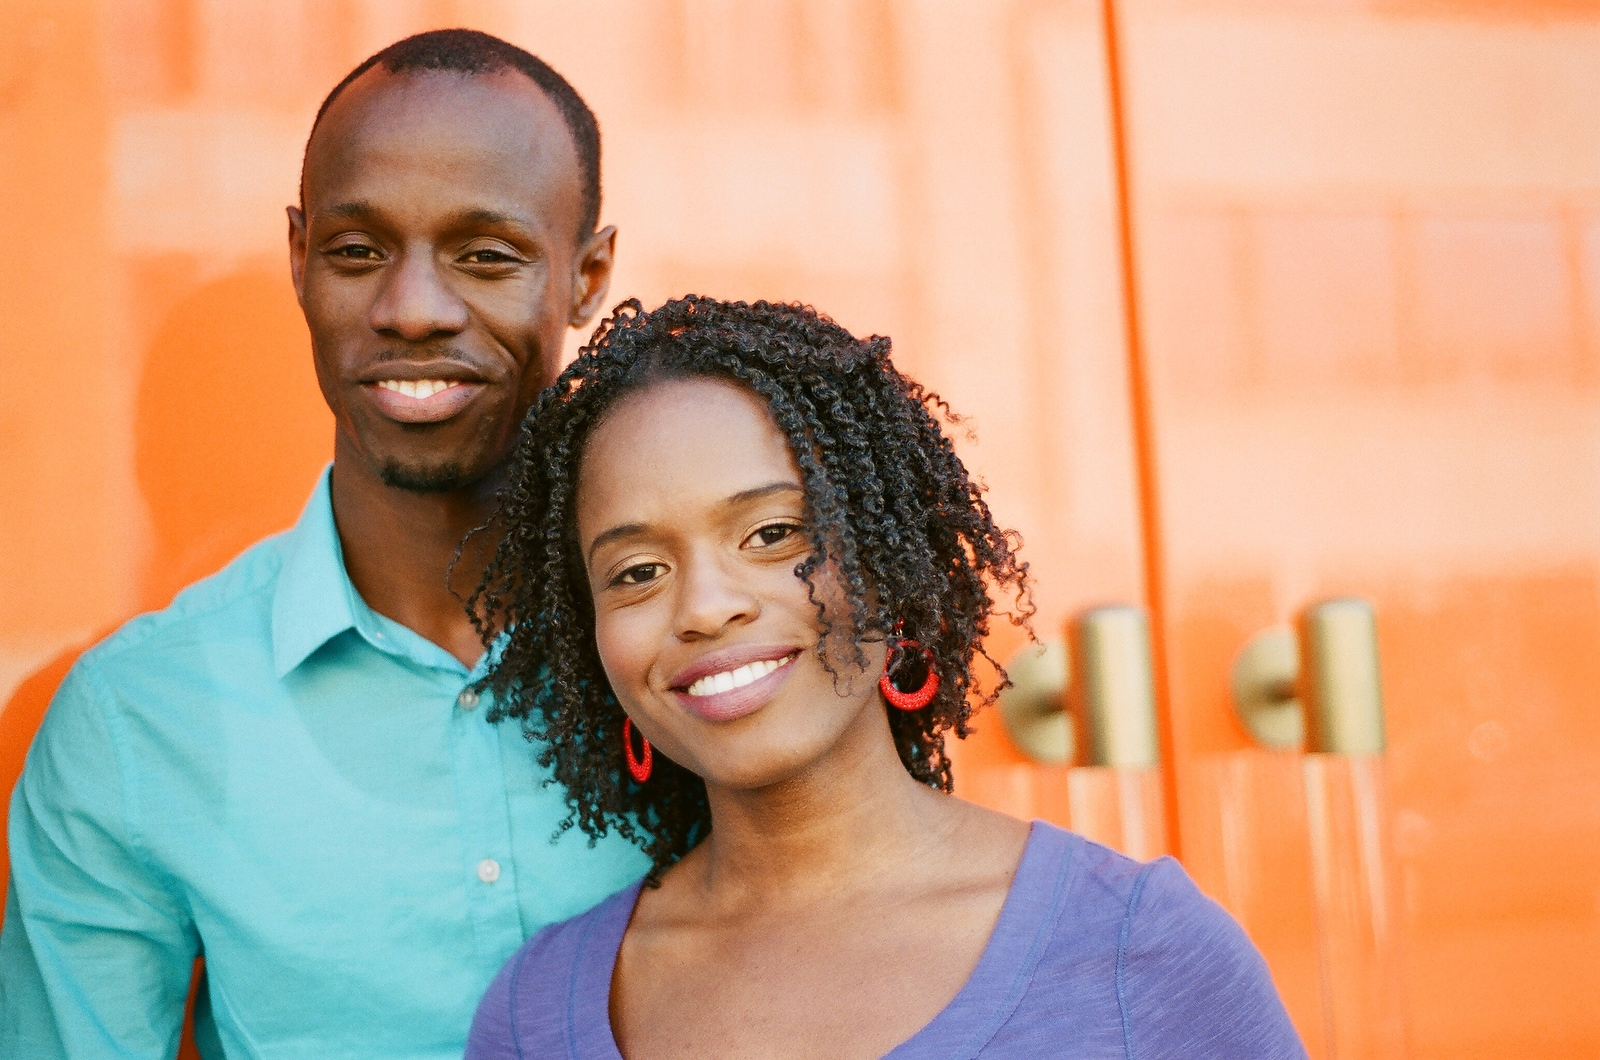 colorful engagement photo of couple in meatpacking district